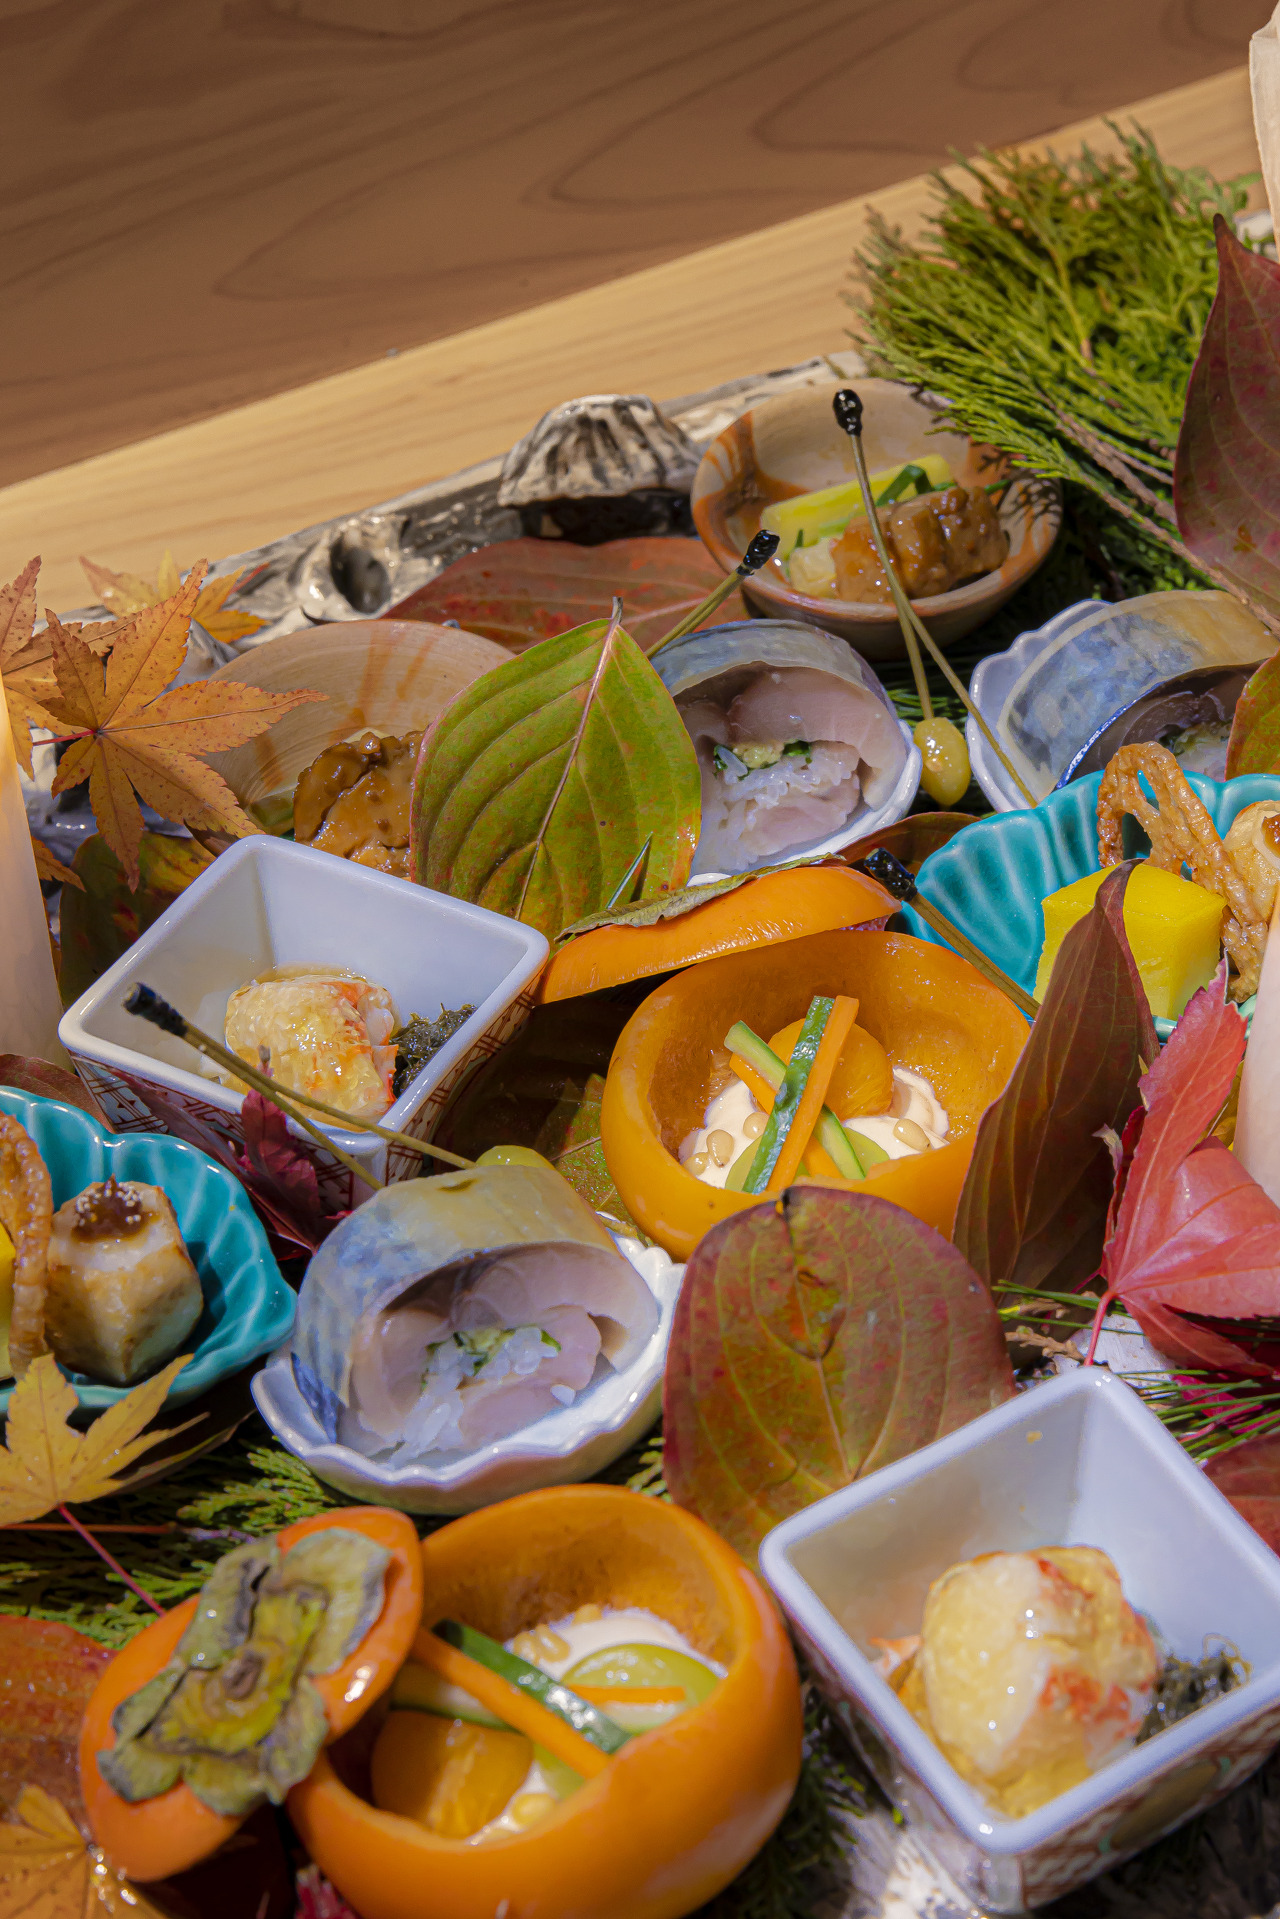 Mackerel sushi, king crab and fresh citrus sauce, Japanese-style egg castella, lotus root chip and taran karaage, tama miso (miso with eggs), ankimo with tofu sauce and sweet persimmon with miso sauce ⓒYuchan Jung